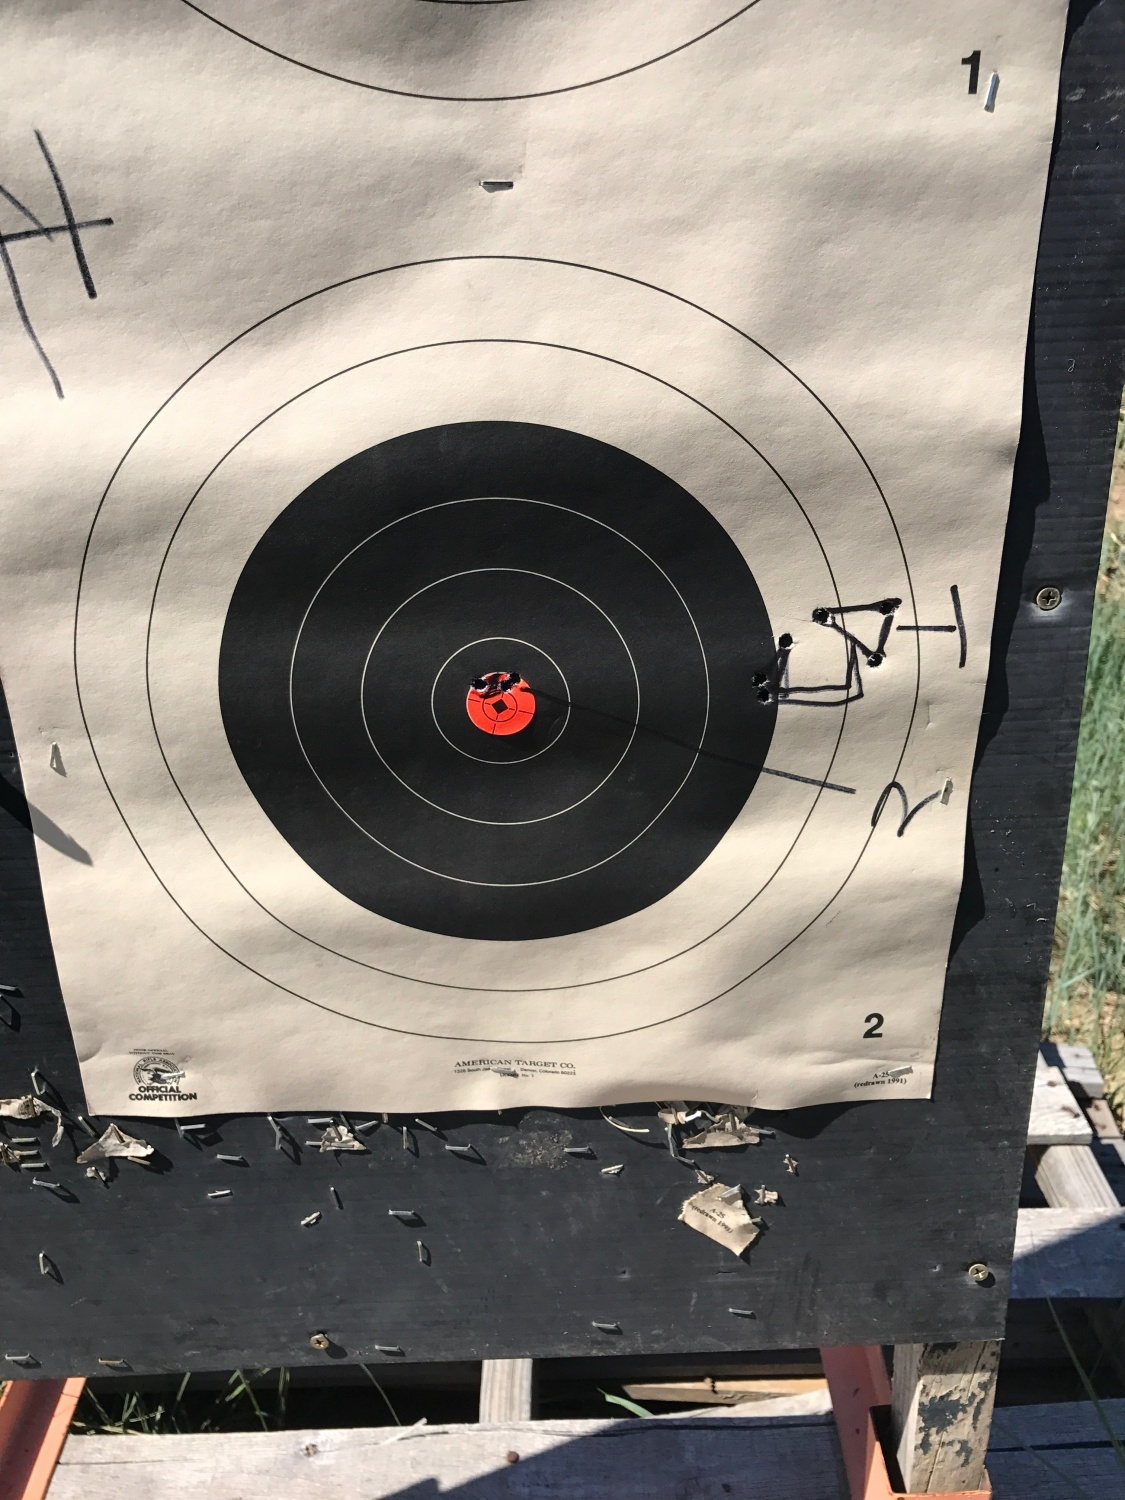 Once I figured out the scope, I was able to dial in pretty quickly.